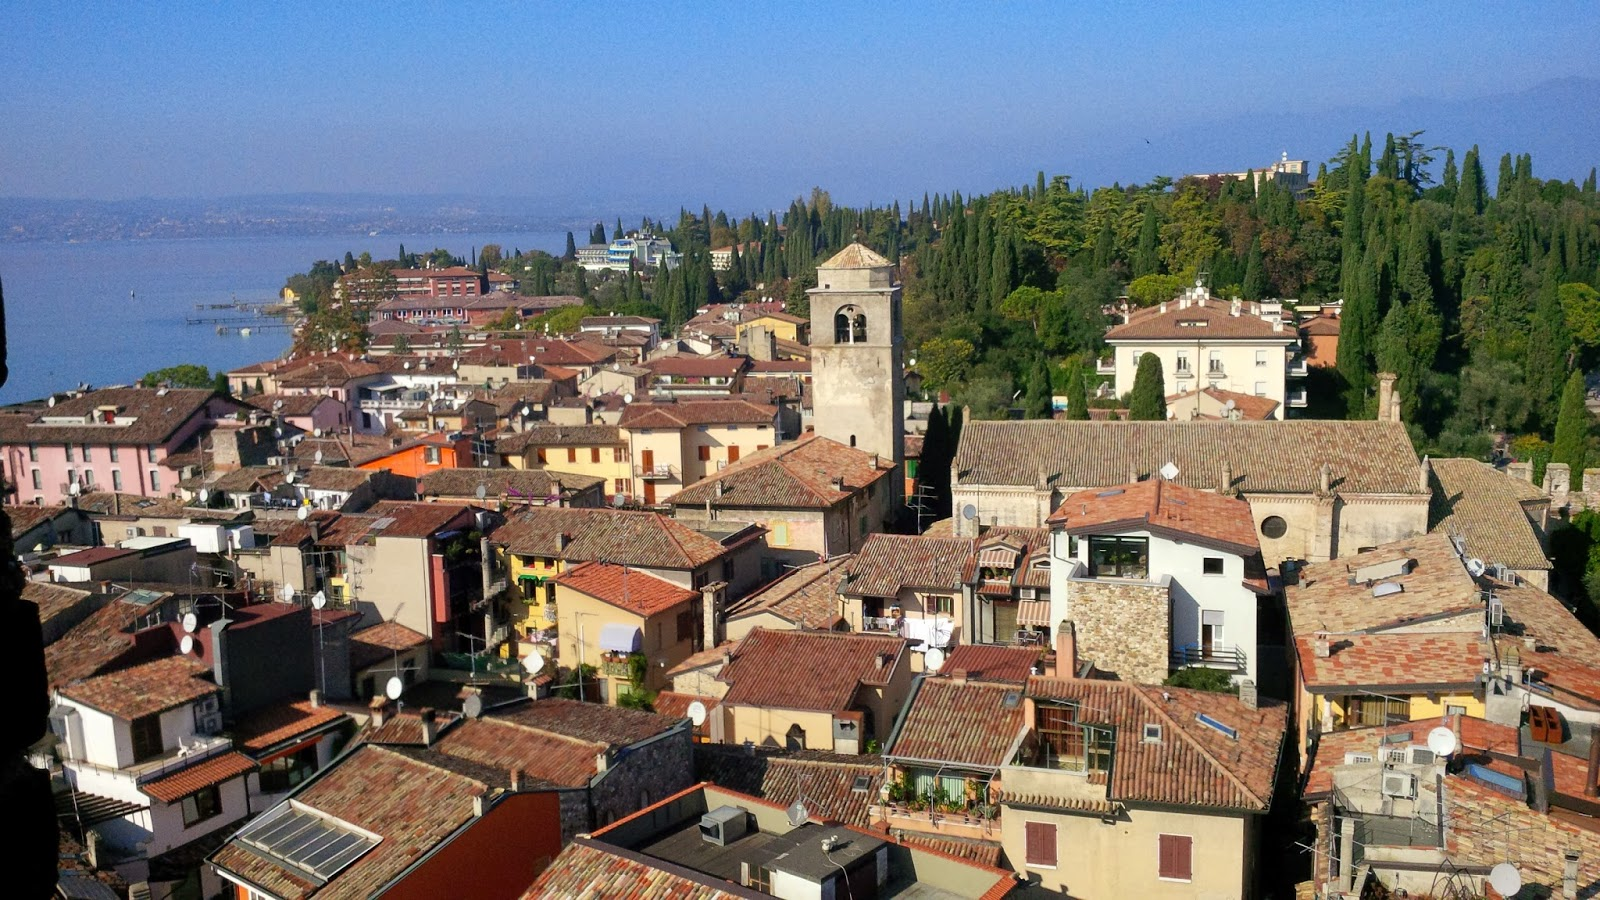 Sirmione's Rooftops